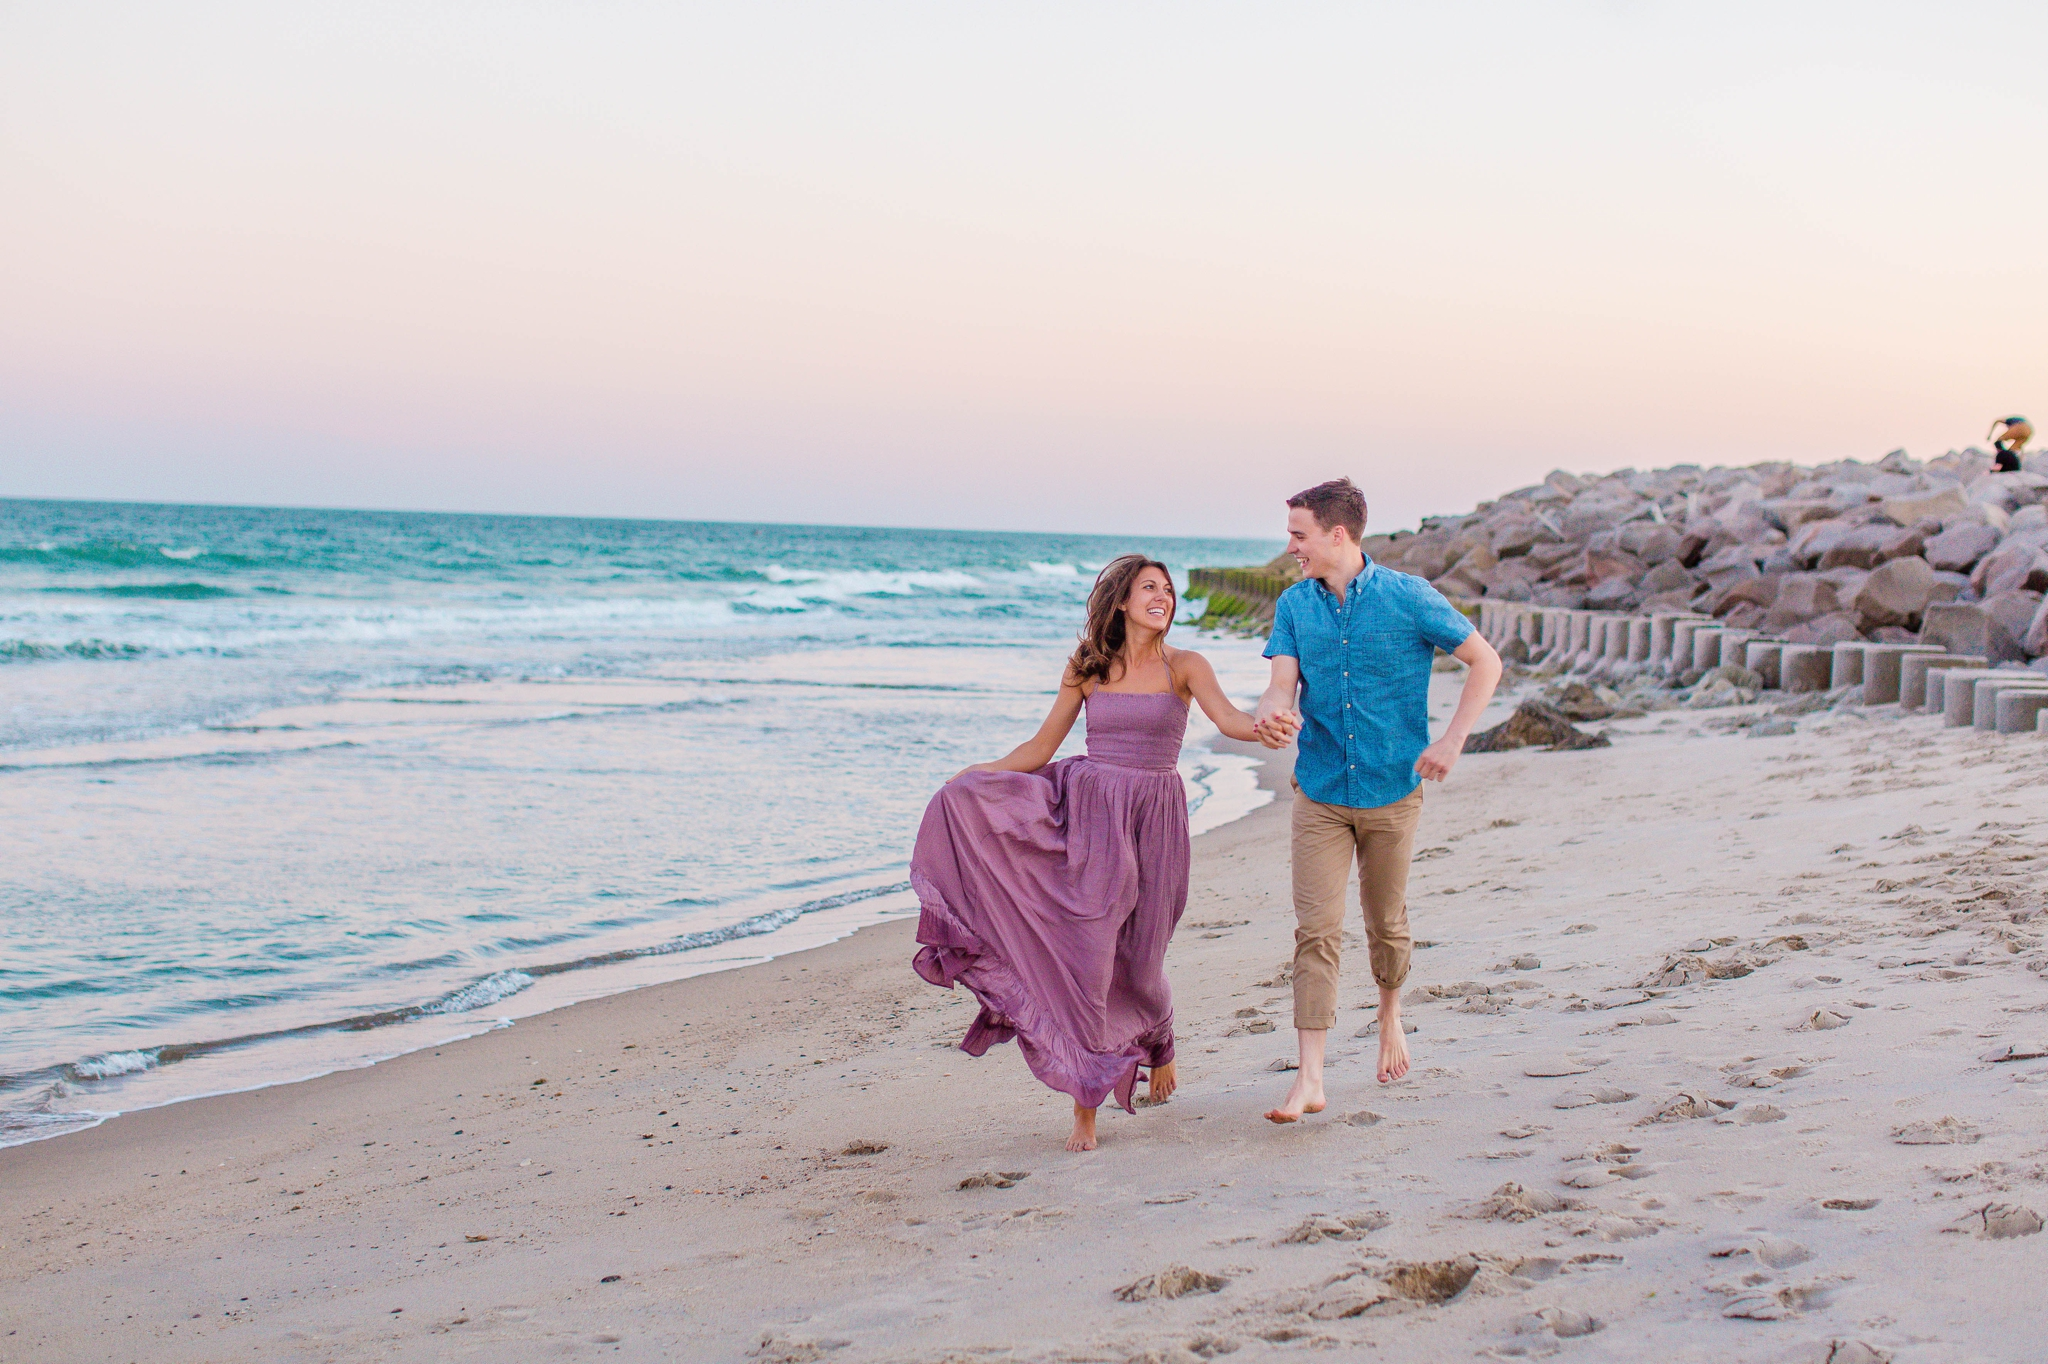 man and woman running in the sand - - Woman is in a flowy pastel maxi dress - candid and unposed golden light session - beach engagement photographer in honolulu, oahu, hawaii - johanna dye photography